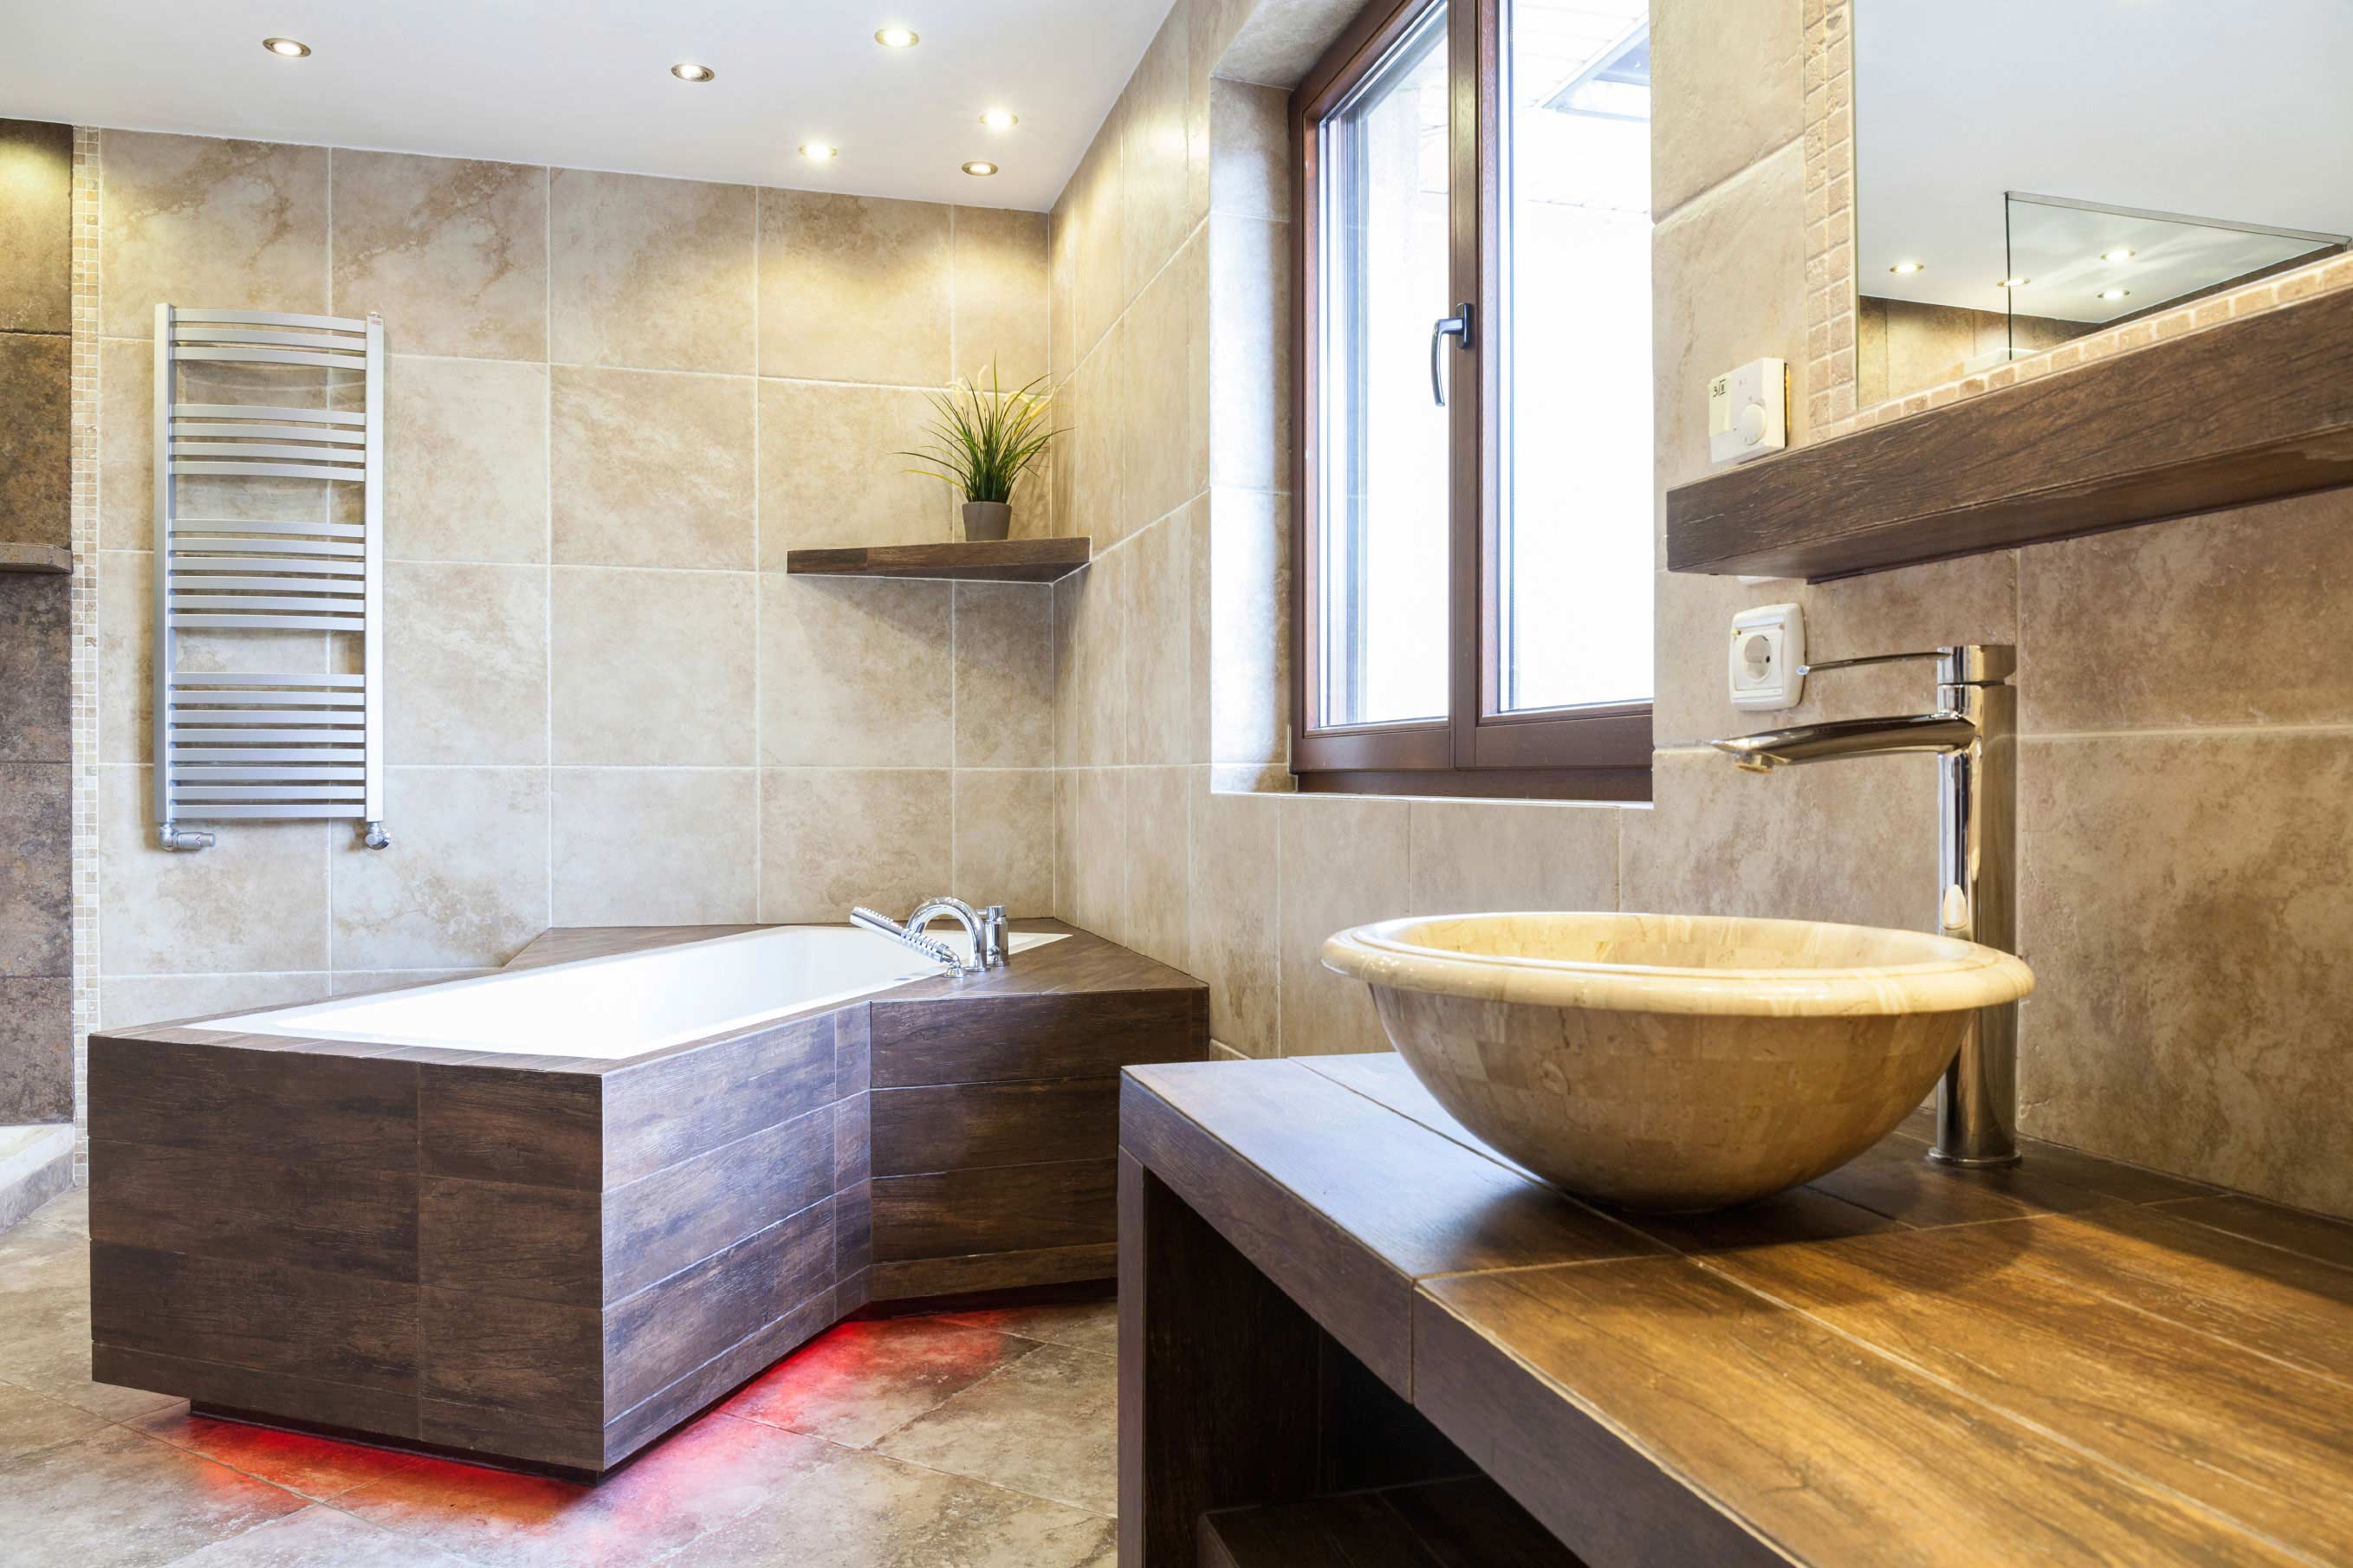 Small Renovations Melbourne 2019 How Much Does A Bathroom Renovation Cost Cost Guide